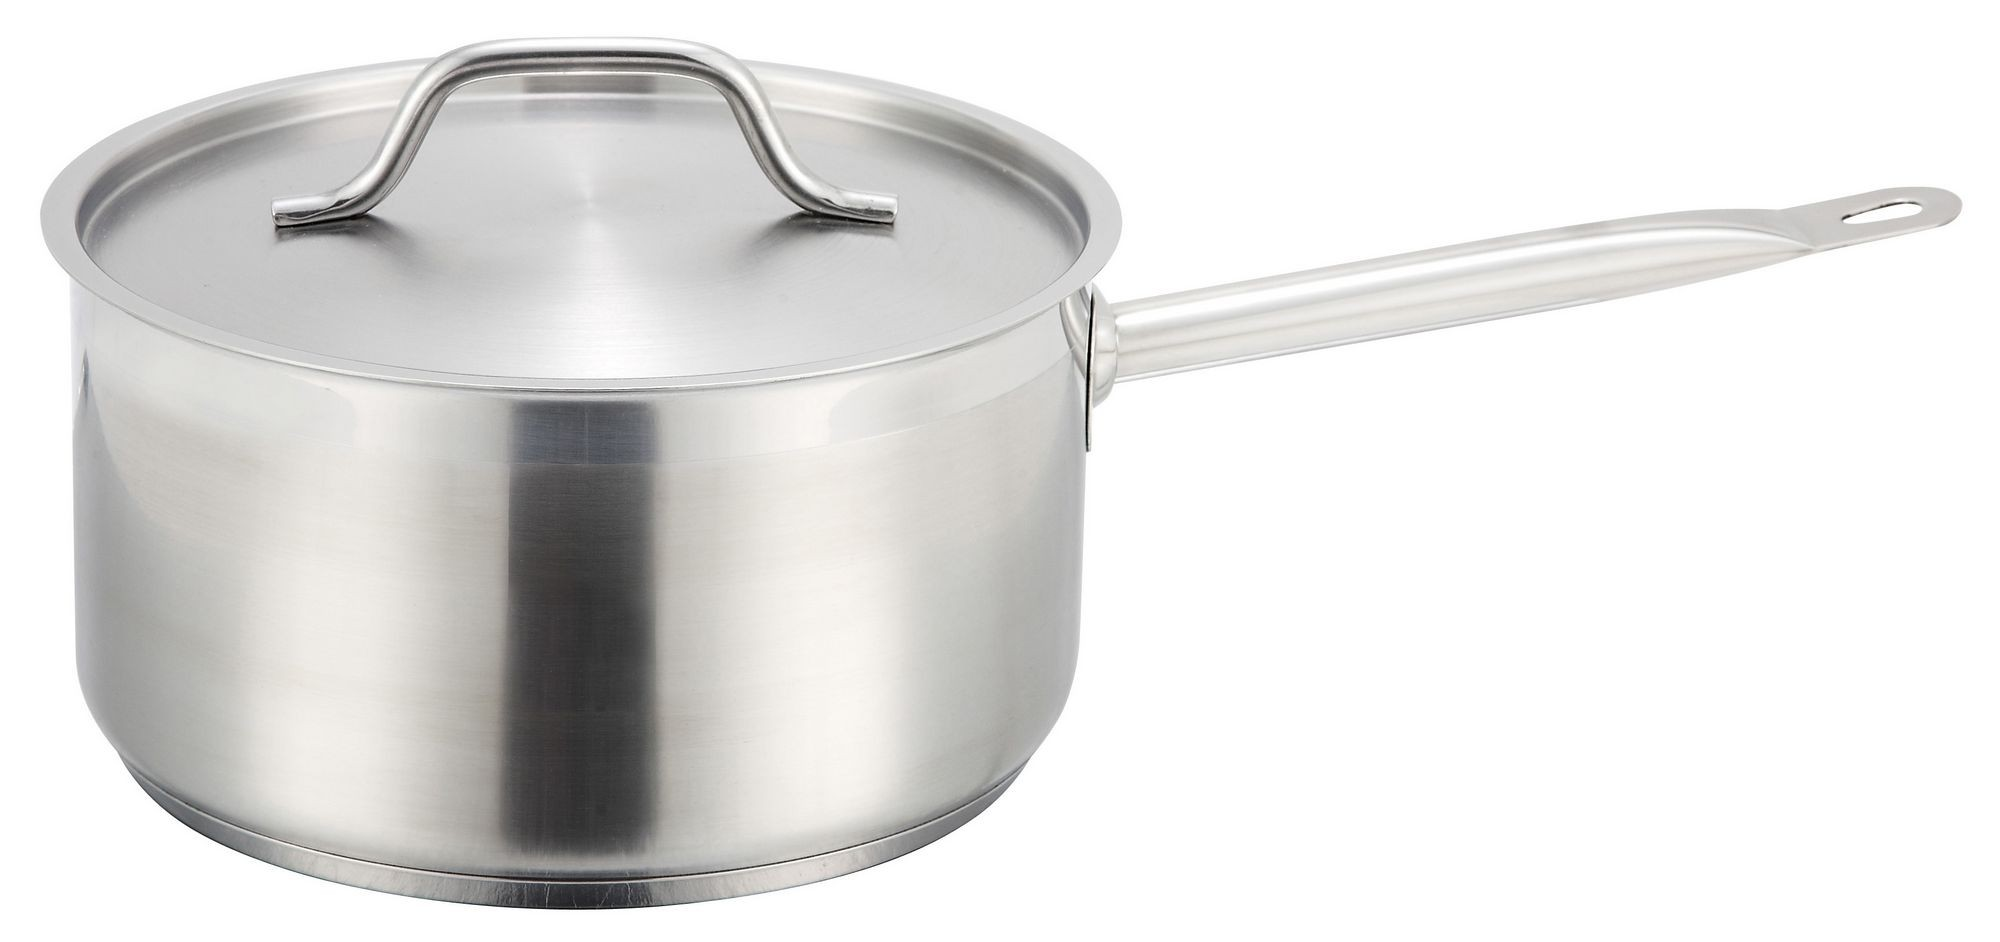 Stainless Steel 4-1/2-Qt Master Cook Sauce Pan With Cover (5 mm aluminum core NSF)